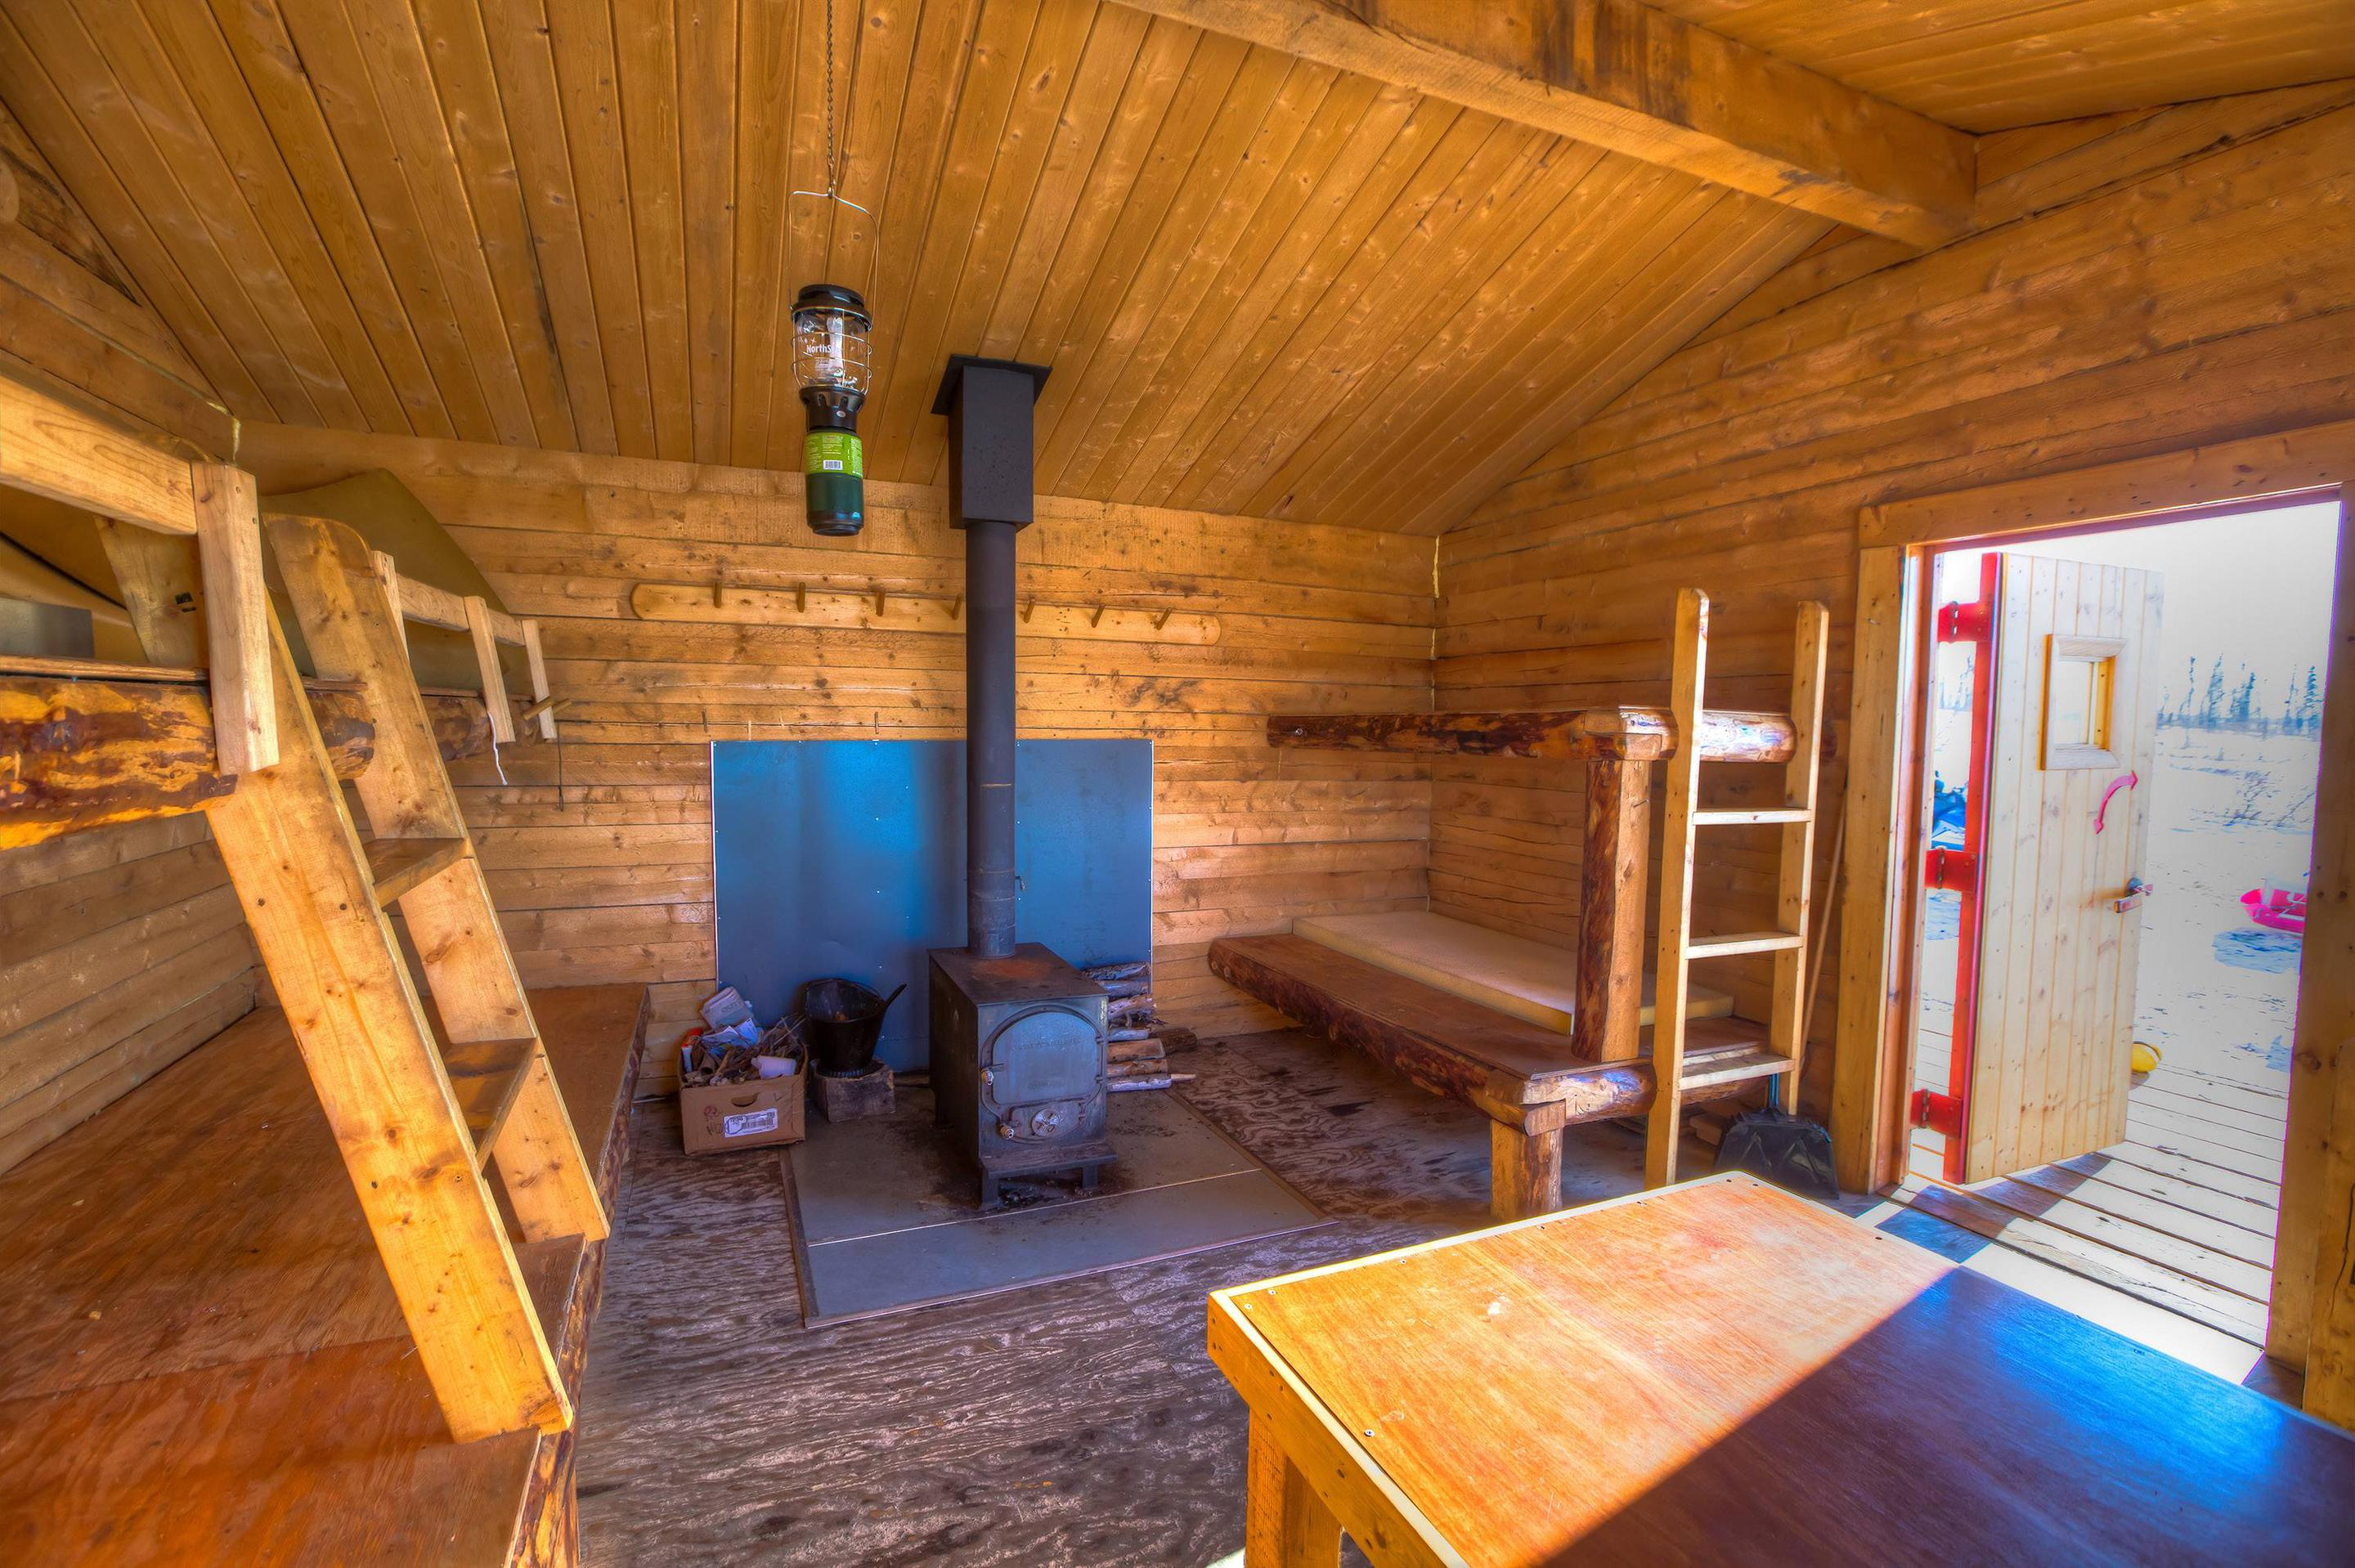 Bunks and woodstove in a log cabinBunks, table, and woodstove in Crowberry Cabin.